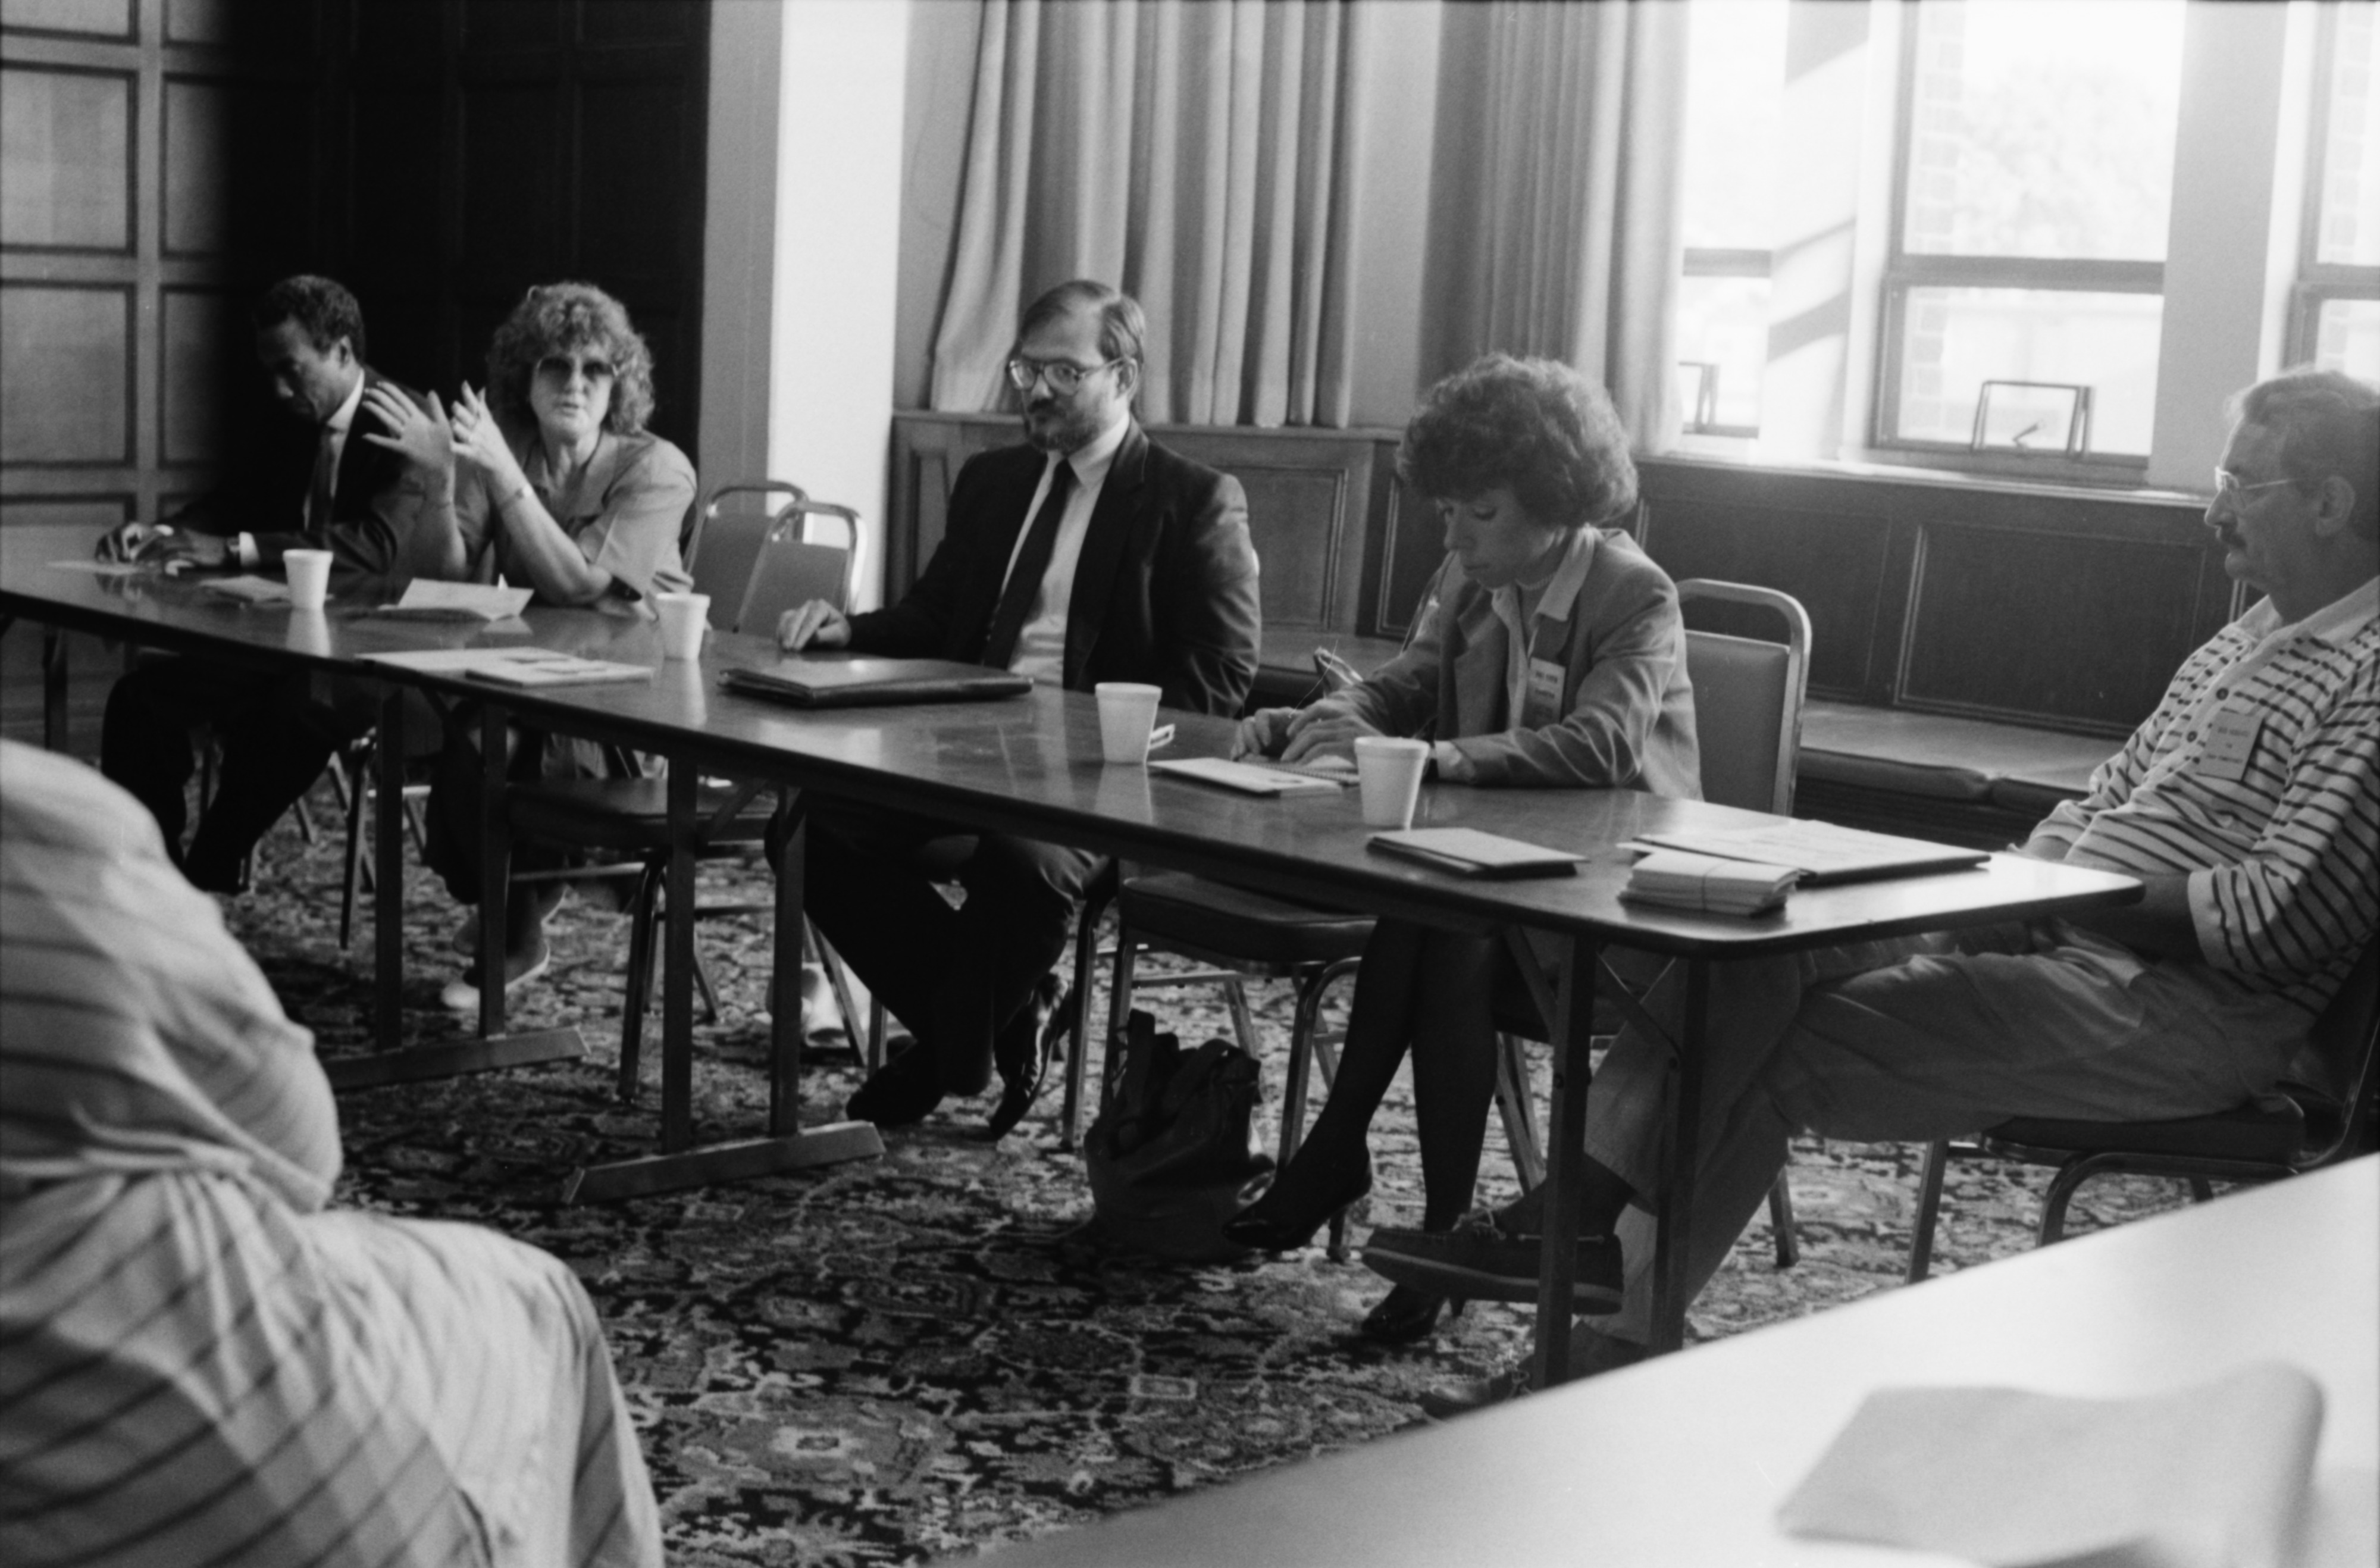 Ypsilanti Democrats Hold Meeting, February 1988 image